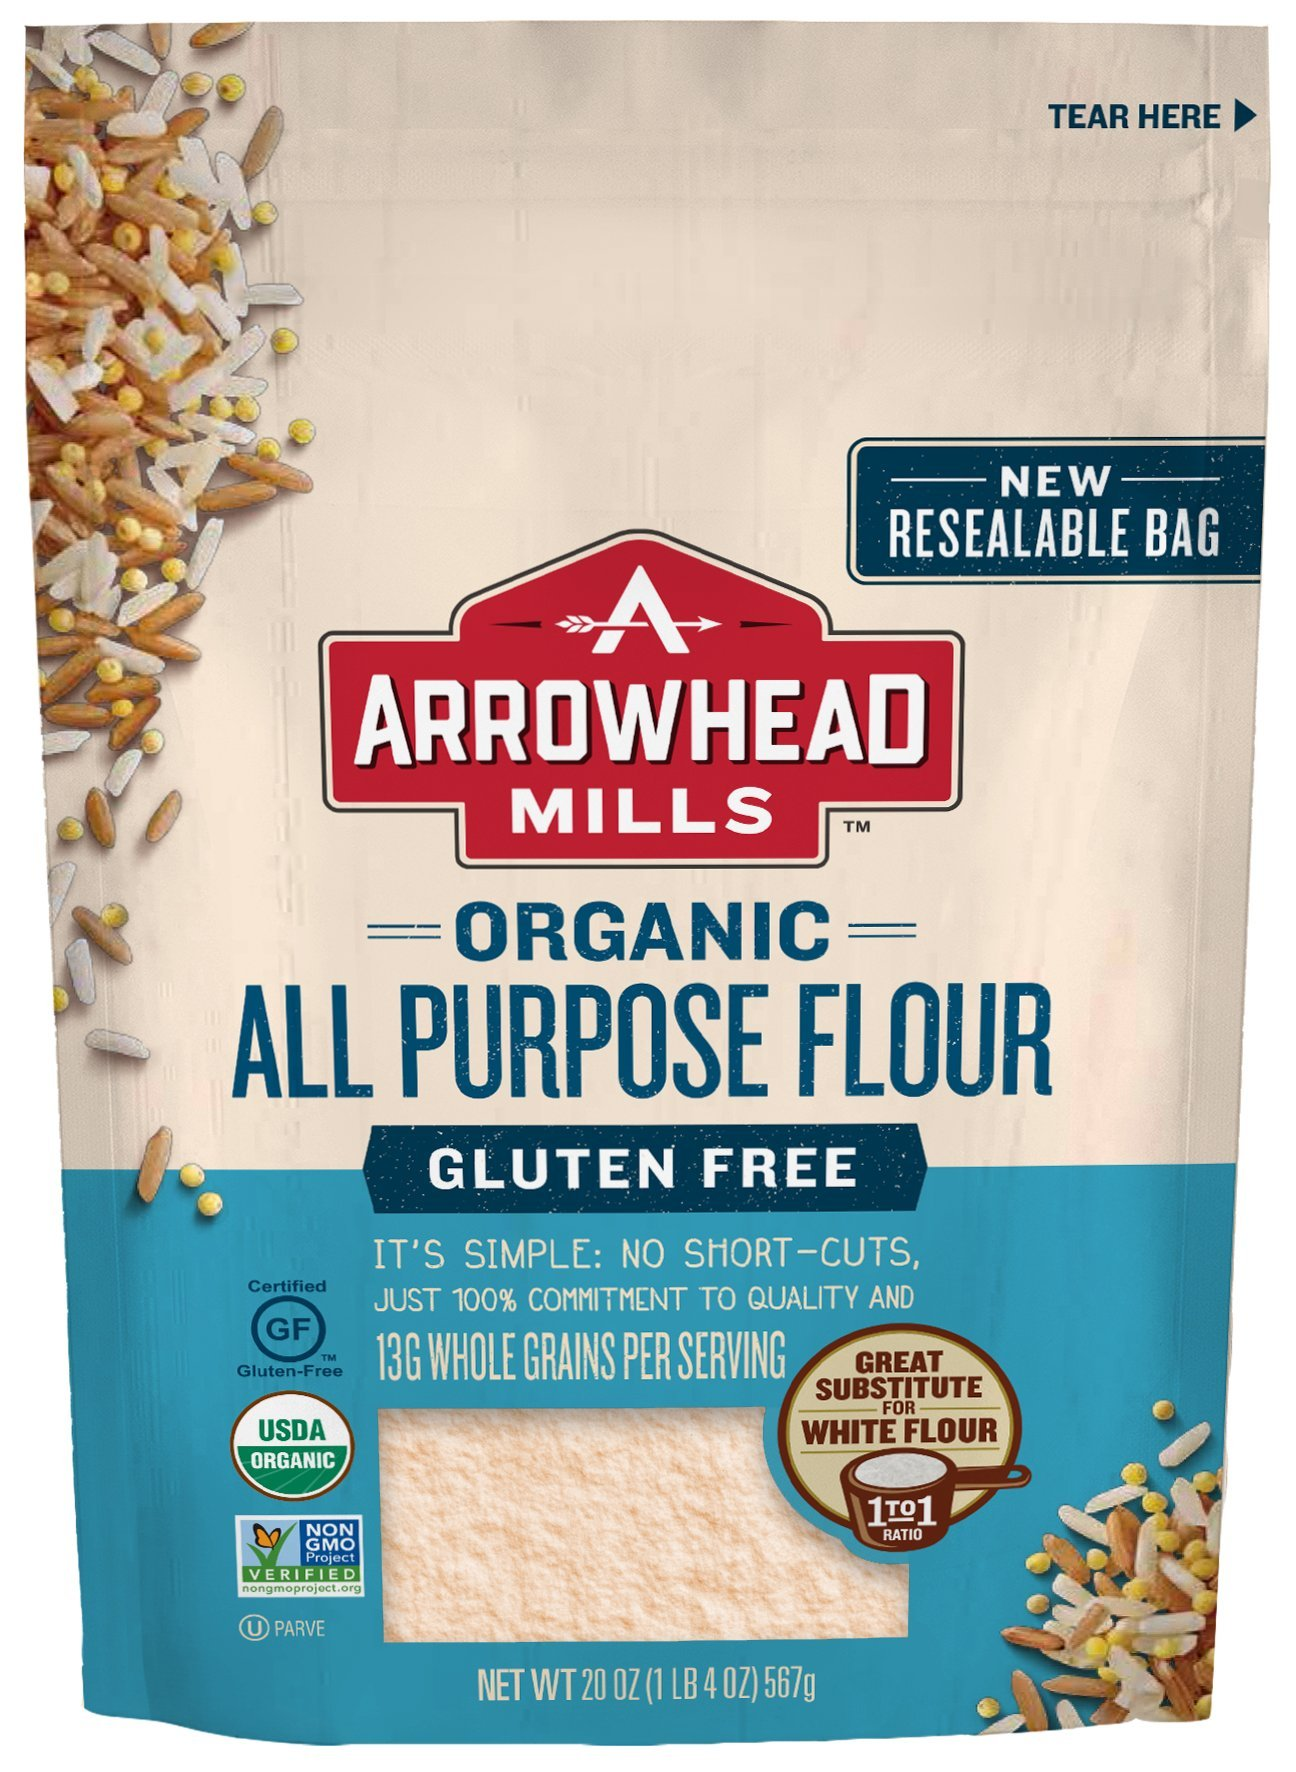 Arrowhead Mills Organic Gluten-Free All-Purpose Flour, 20 oz. Bag (Pack of 6) by Arrowhead Mills